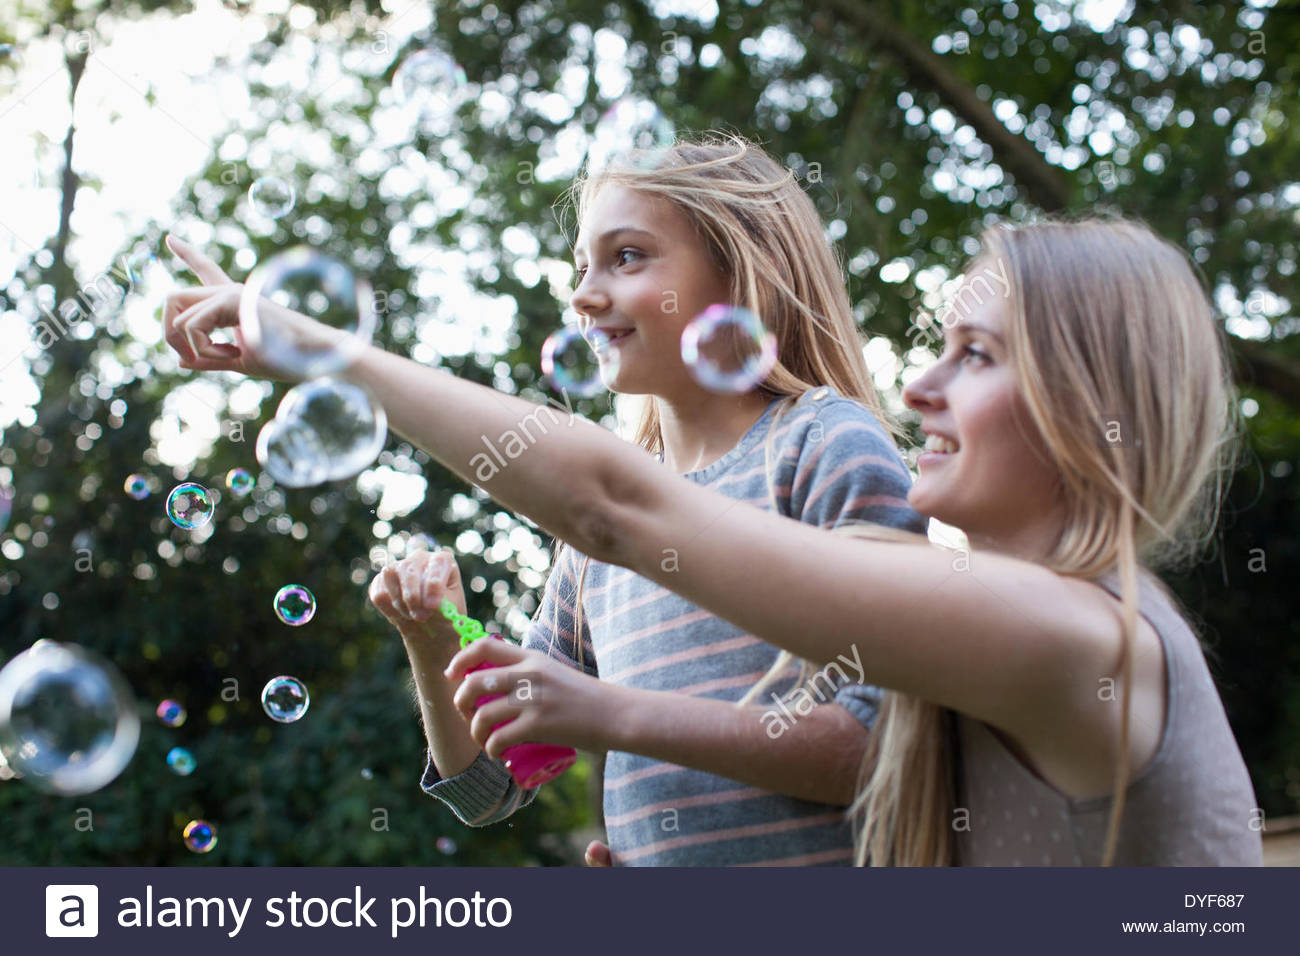 Mother and daughter blowing bubbles under tree - Stock Image